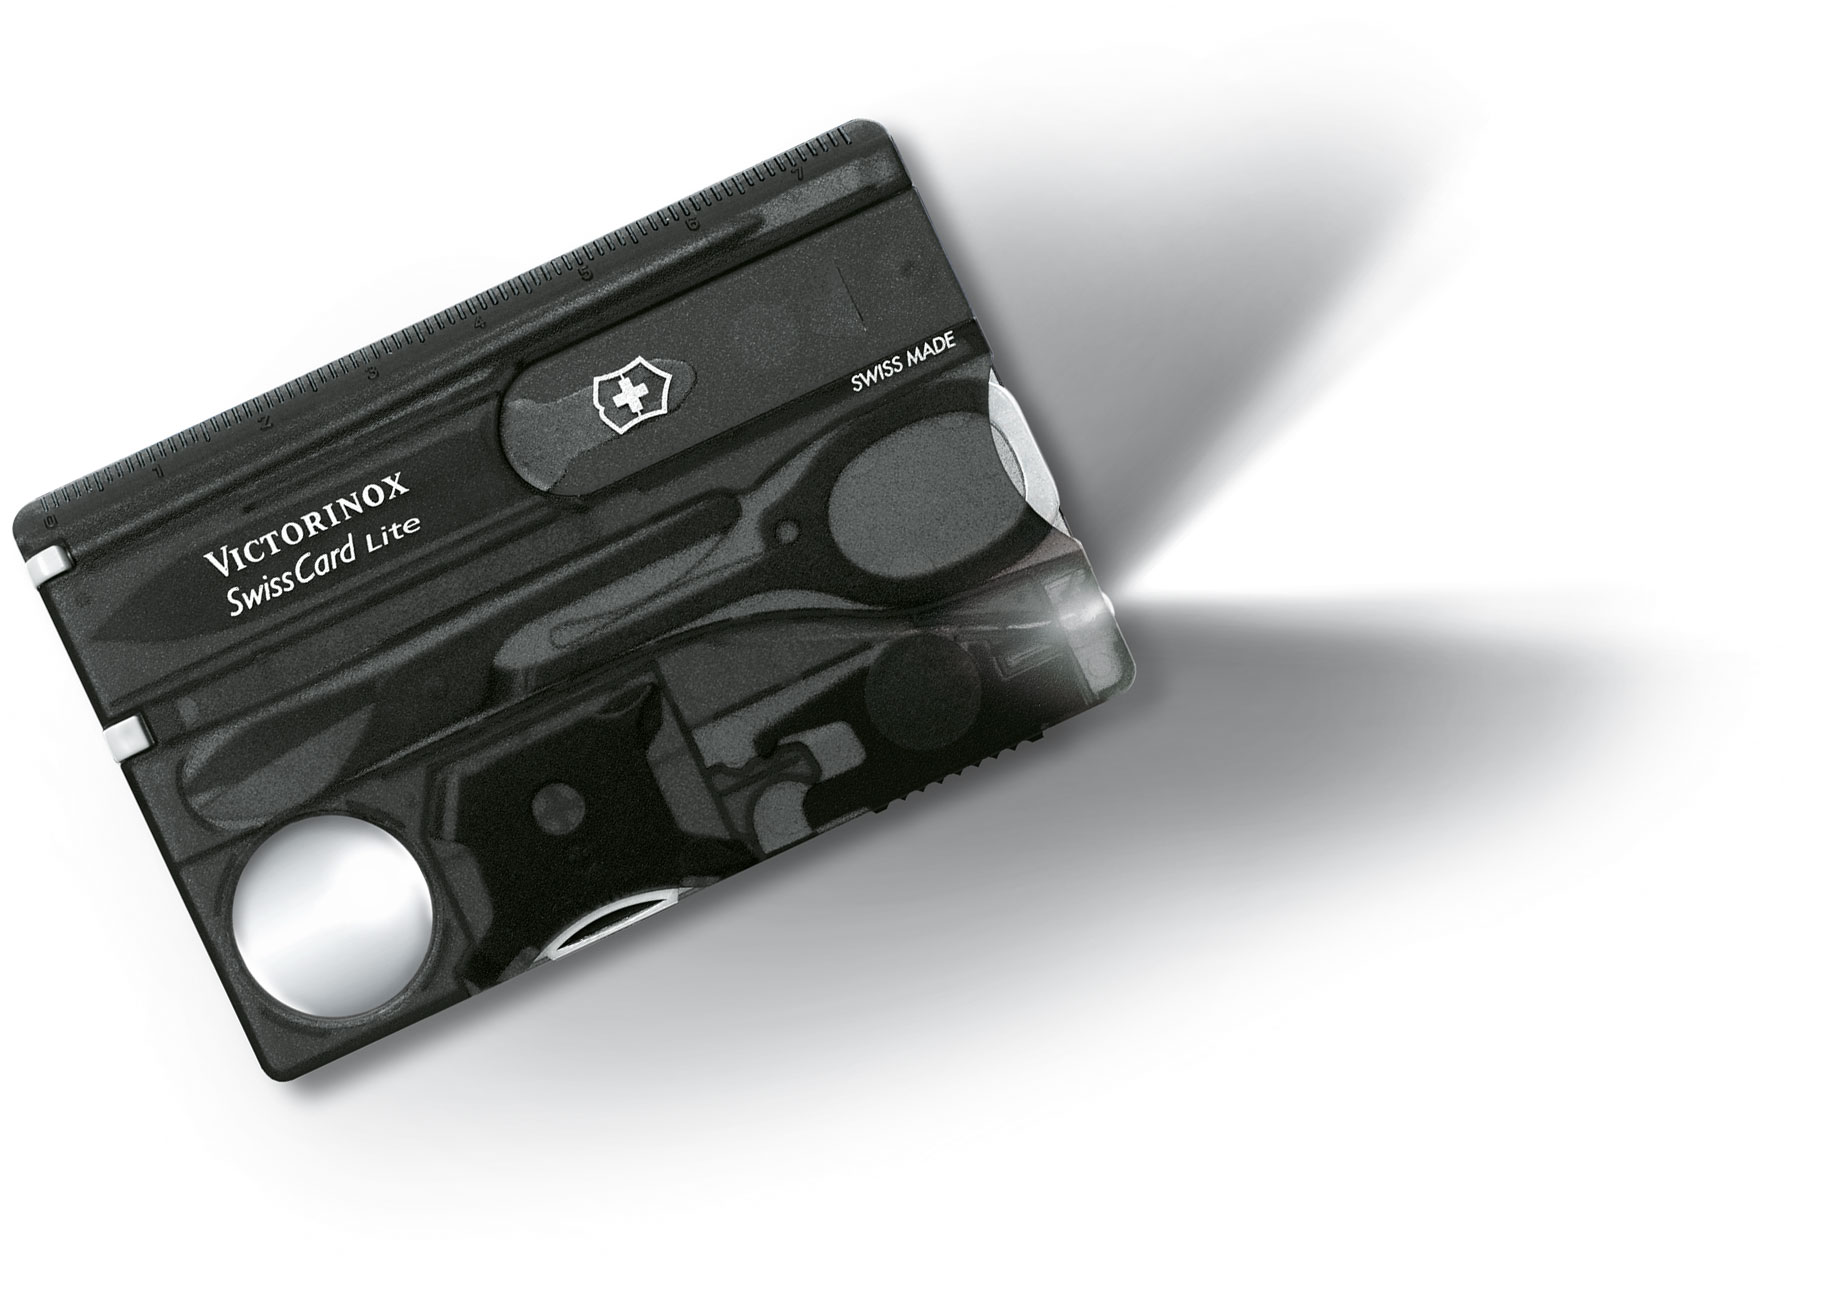 Victorinox Swiss Army SwissCard Lite Multi-Tool with White LED Light, Translucent Onyx